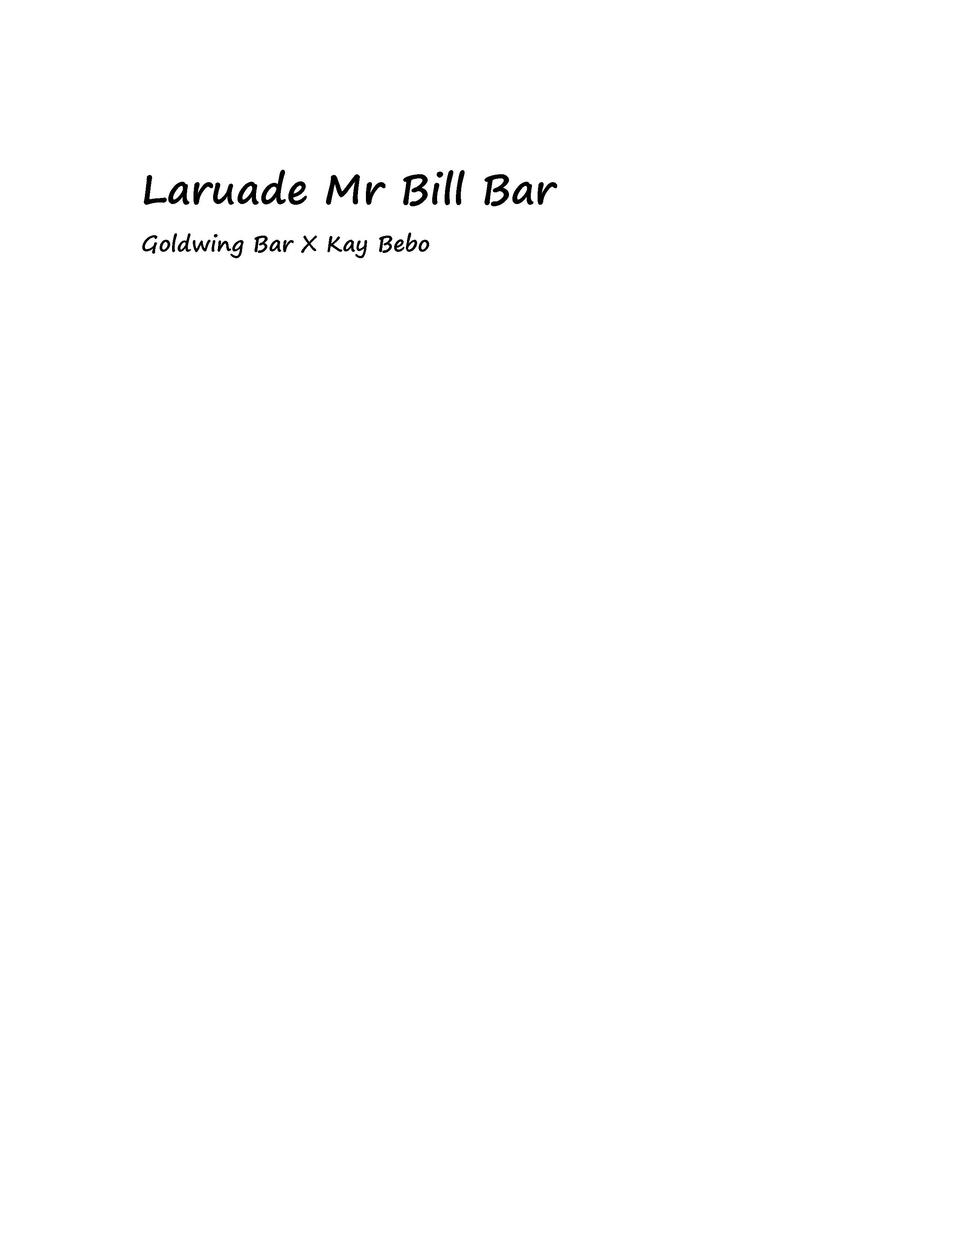 Laruade Mr Bill Bar Goldwing Bar X Kay Bebo